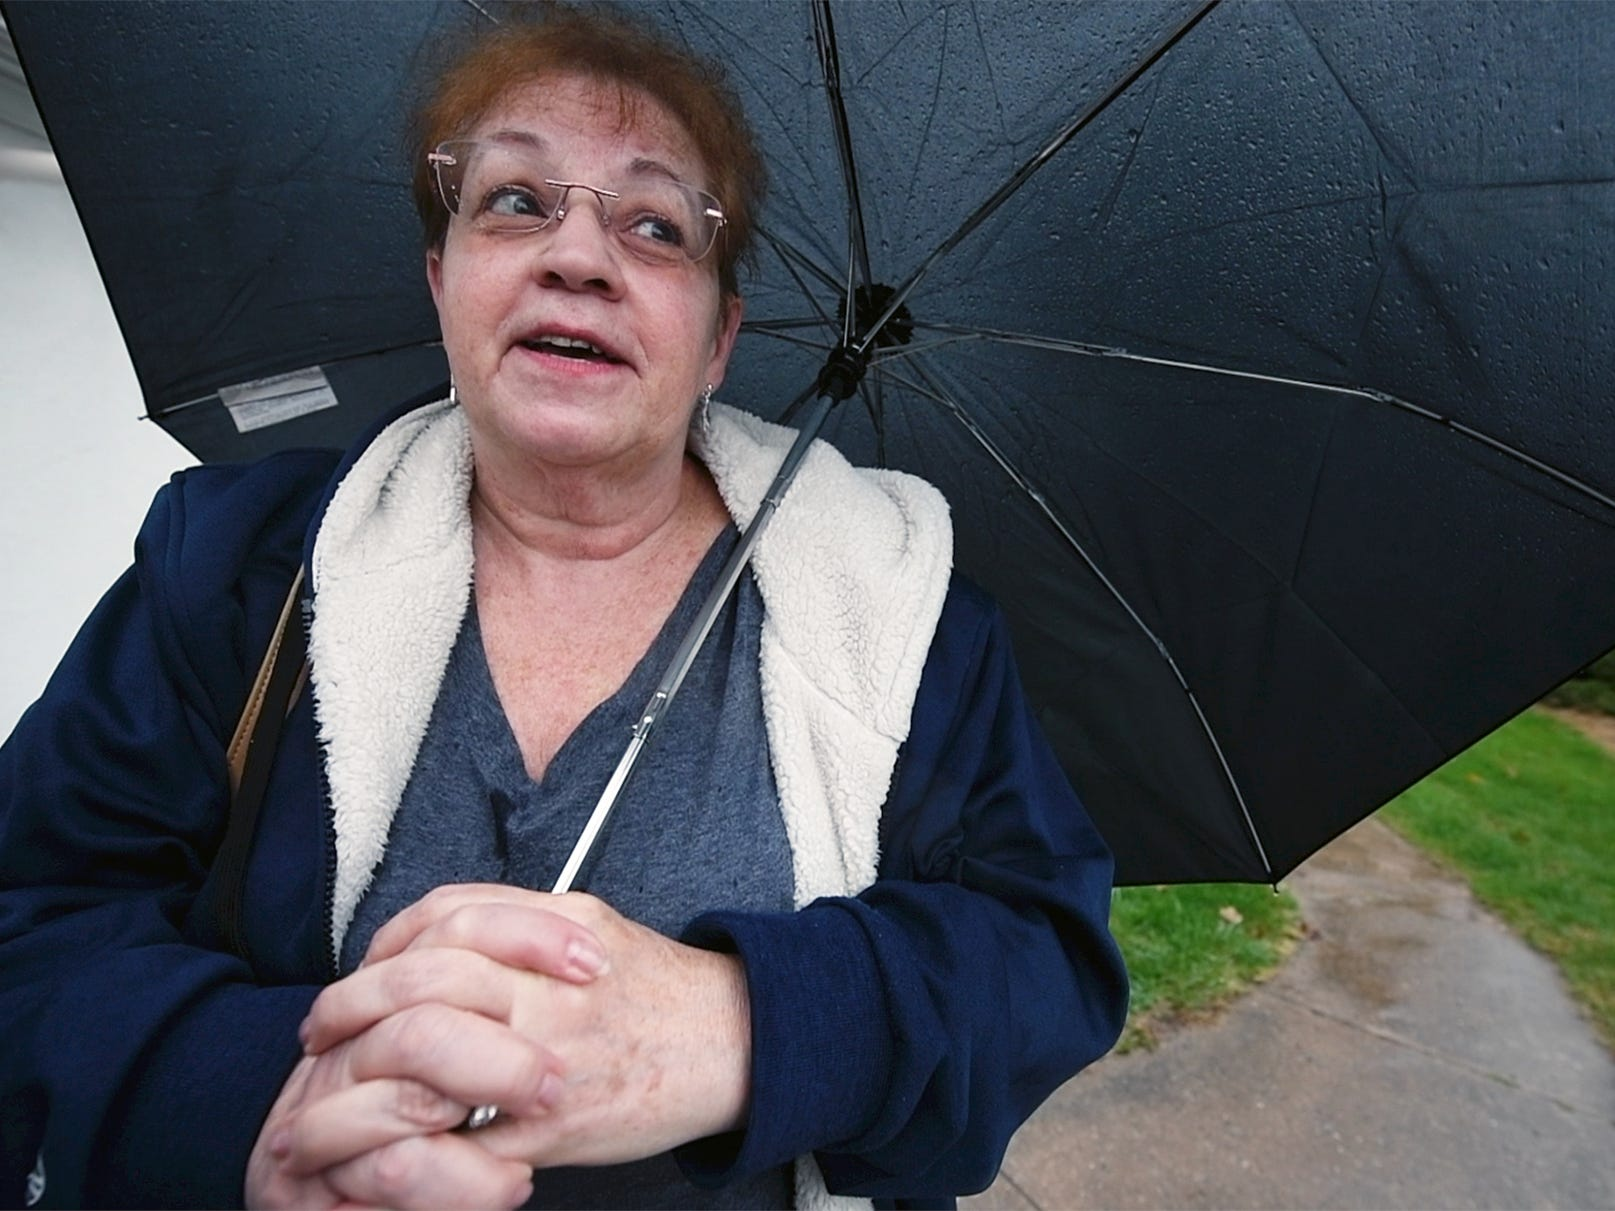 Kathy Zeiders with her umbrella after voting on Election Day in Thomasville.